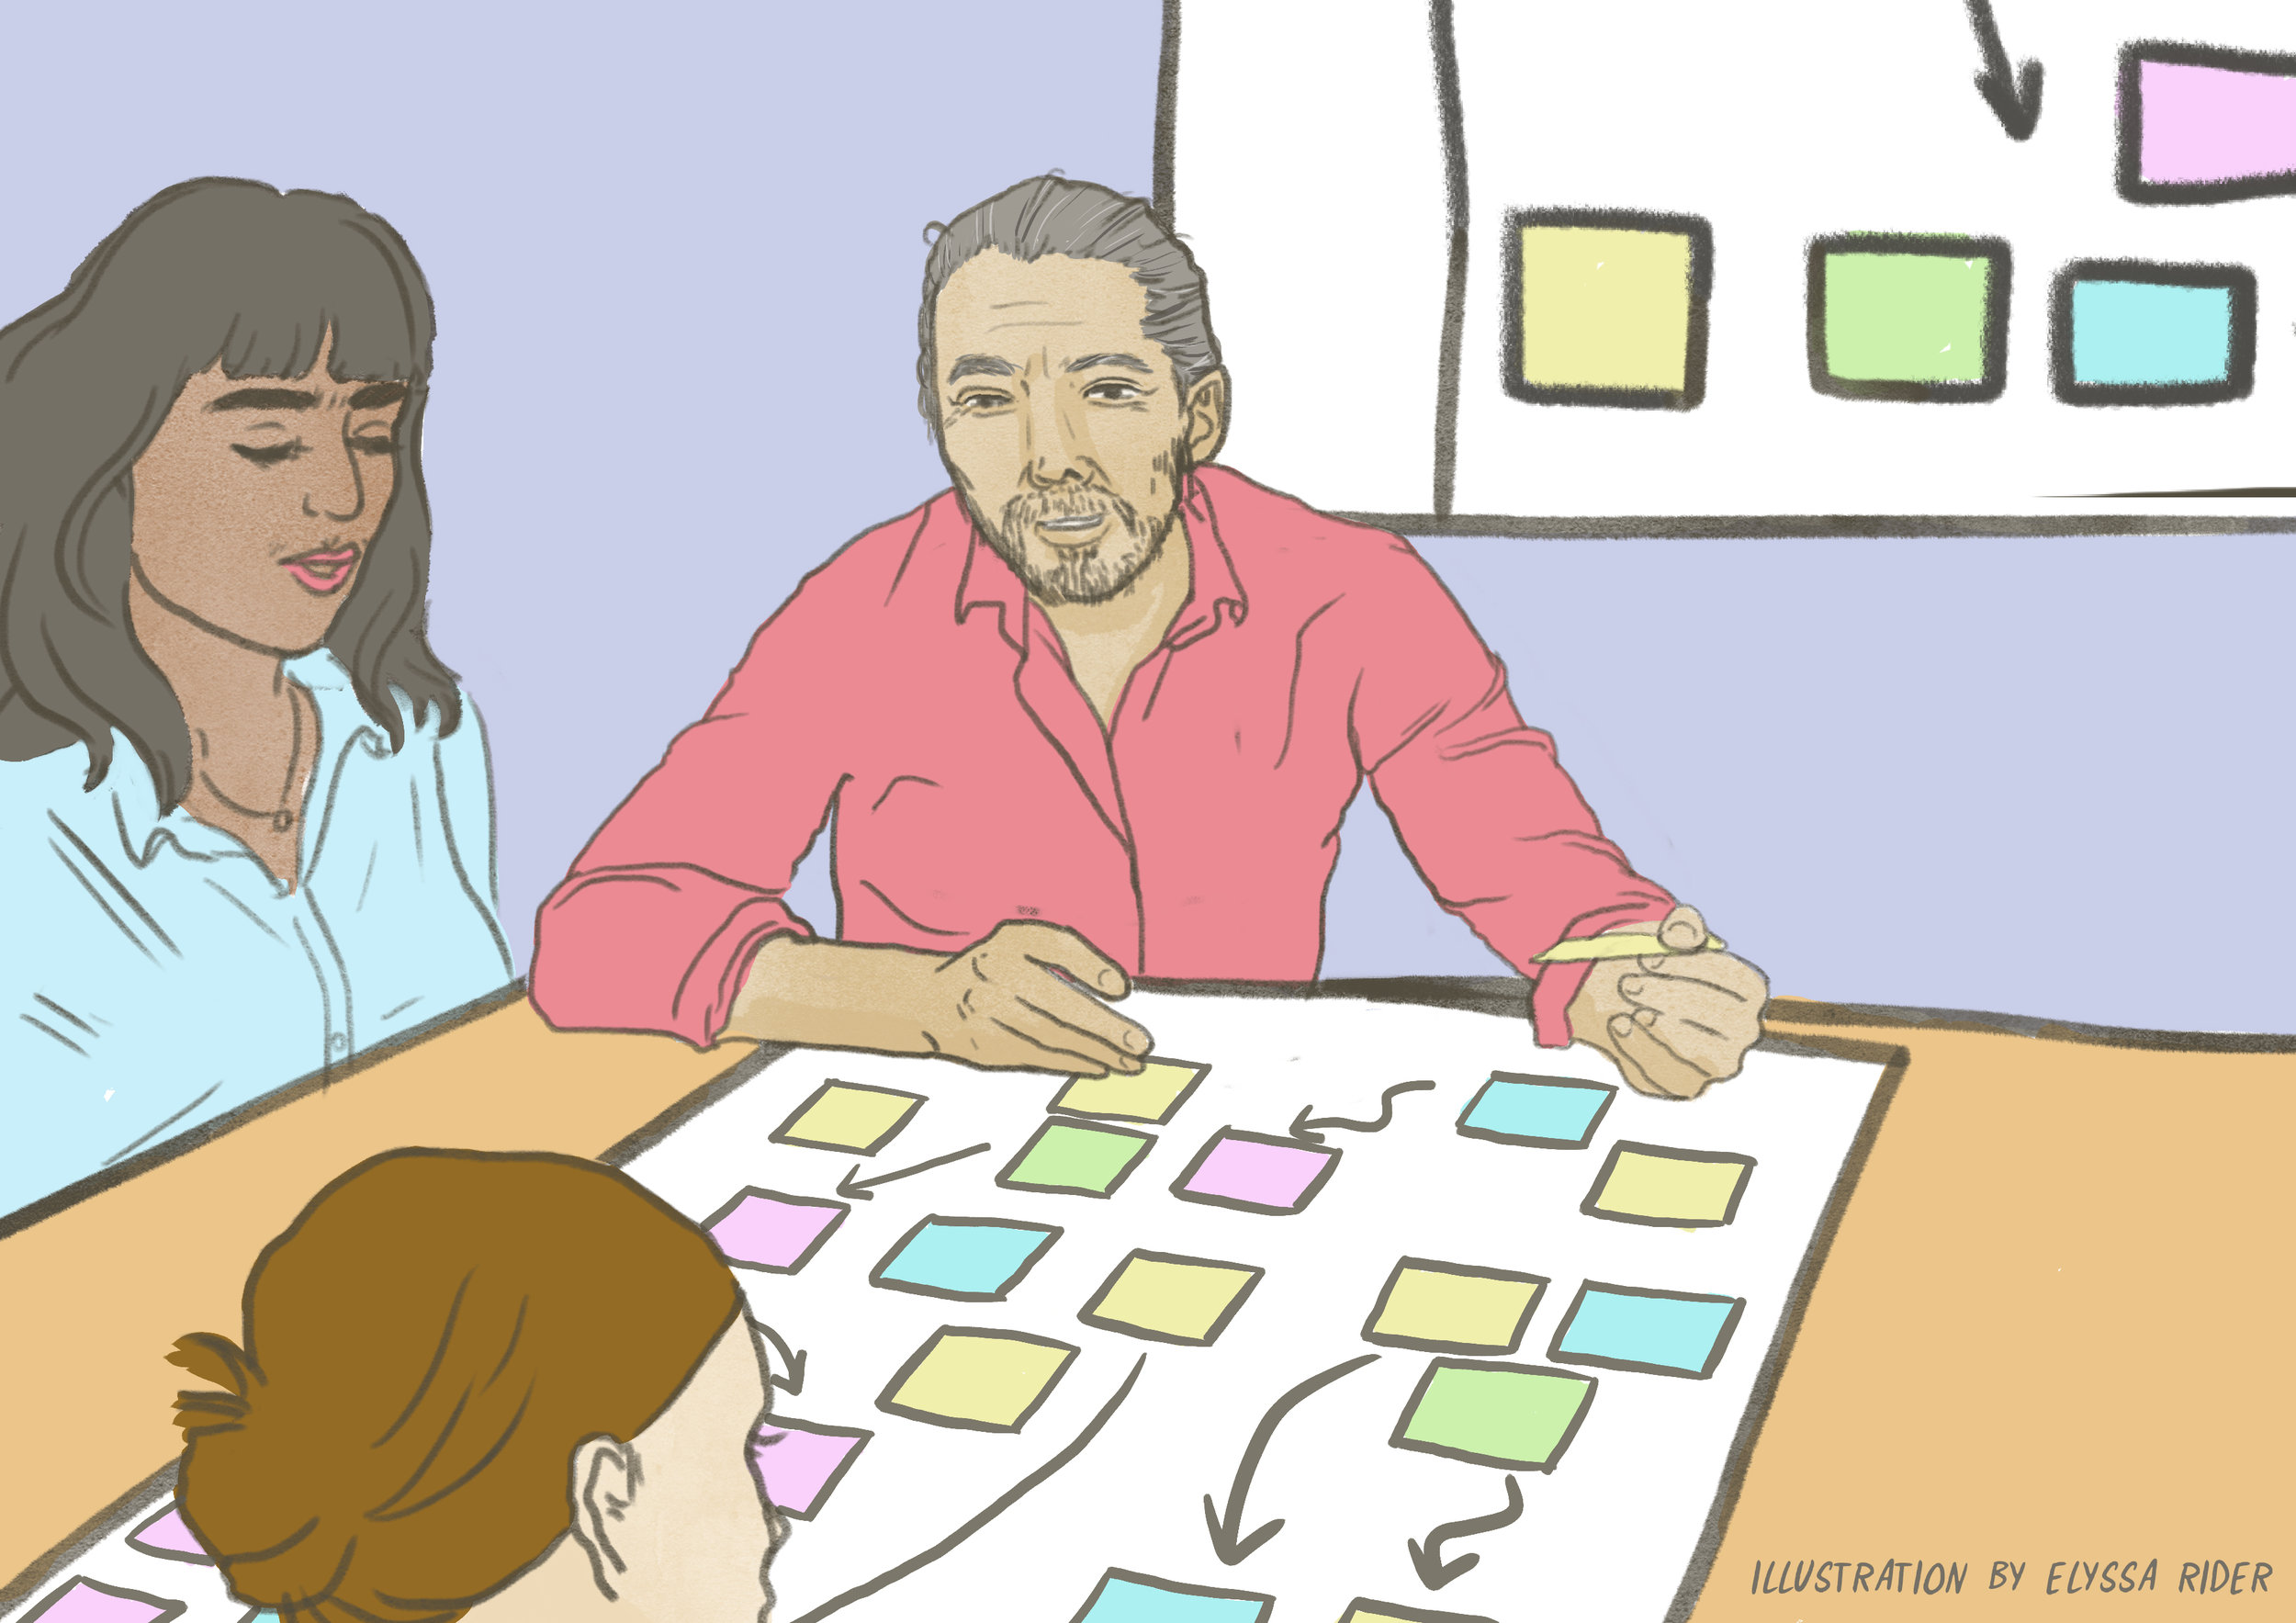 'Topic roadmapping' activity from S-Plan process for business, corporate and sector strategy